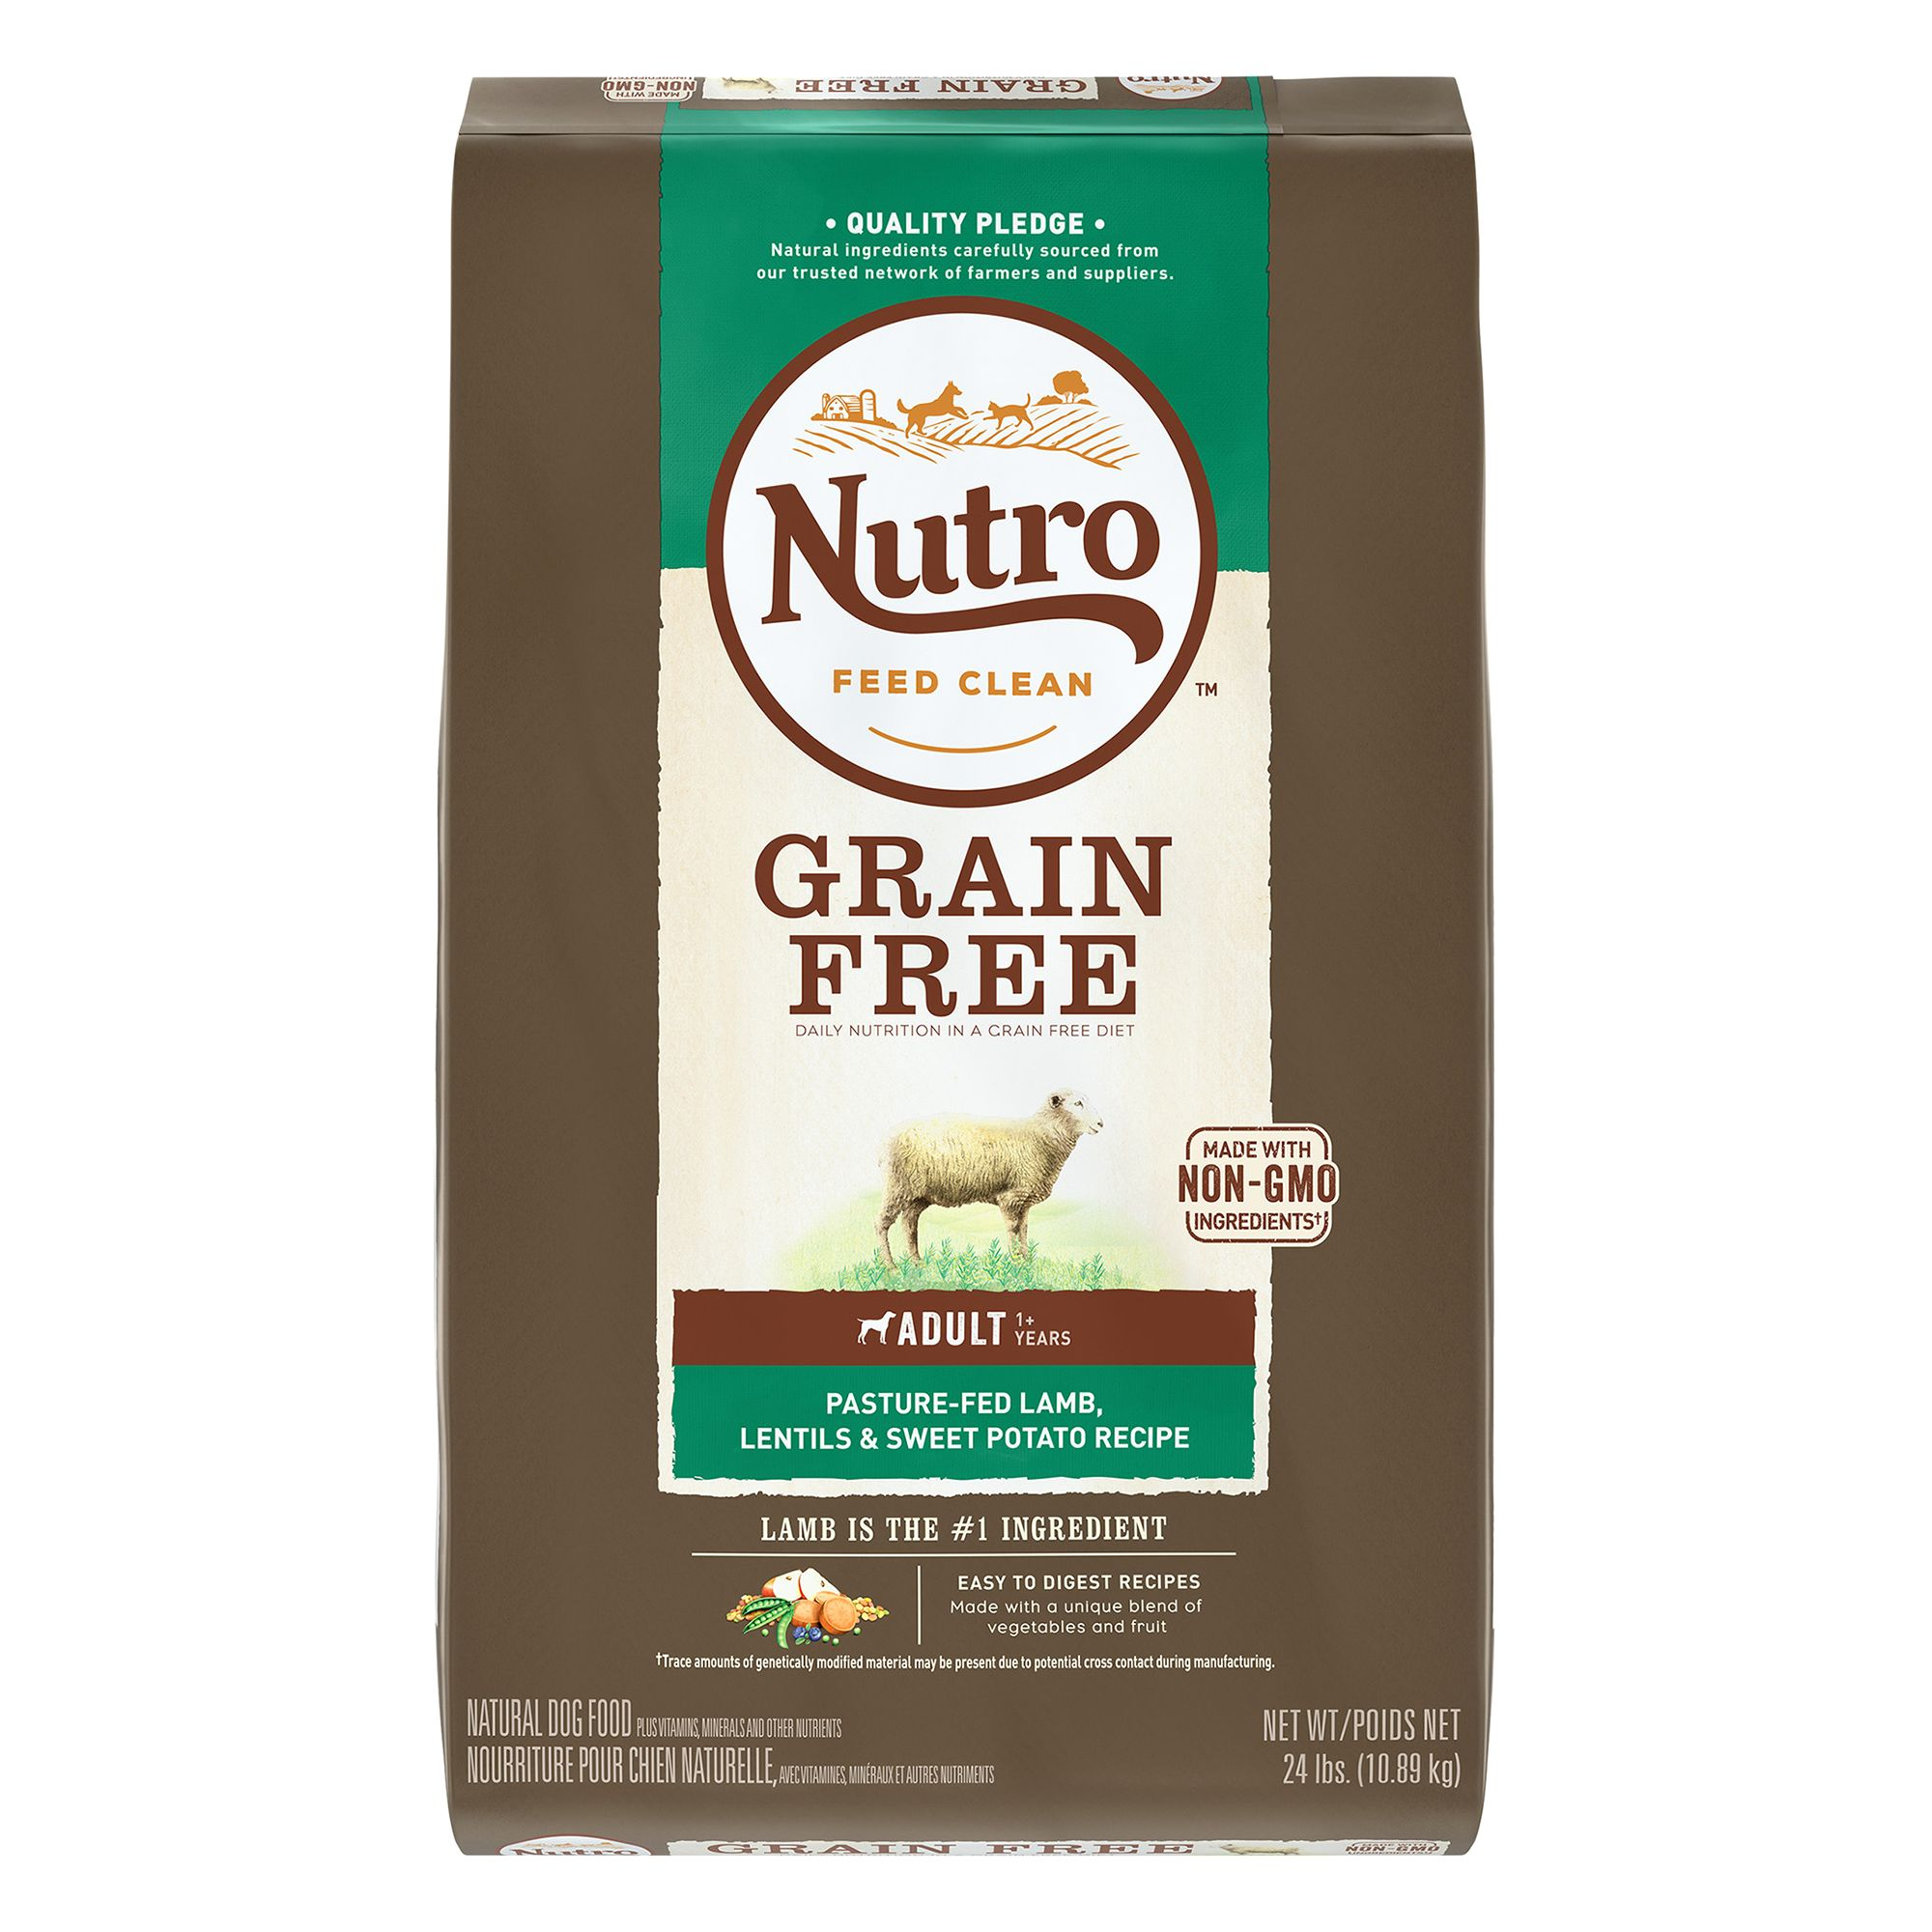 Nutro Grain Free Adult Dog Food - Natural, Non-GMO, Lamb, Lentils and Sweet Potato size: 24 Lb, Kibble, (1-7 years) 5246492